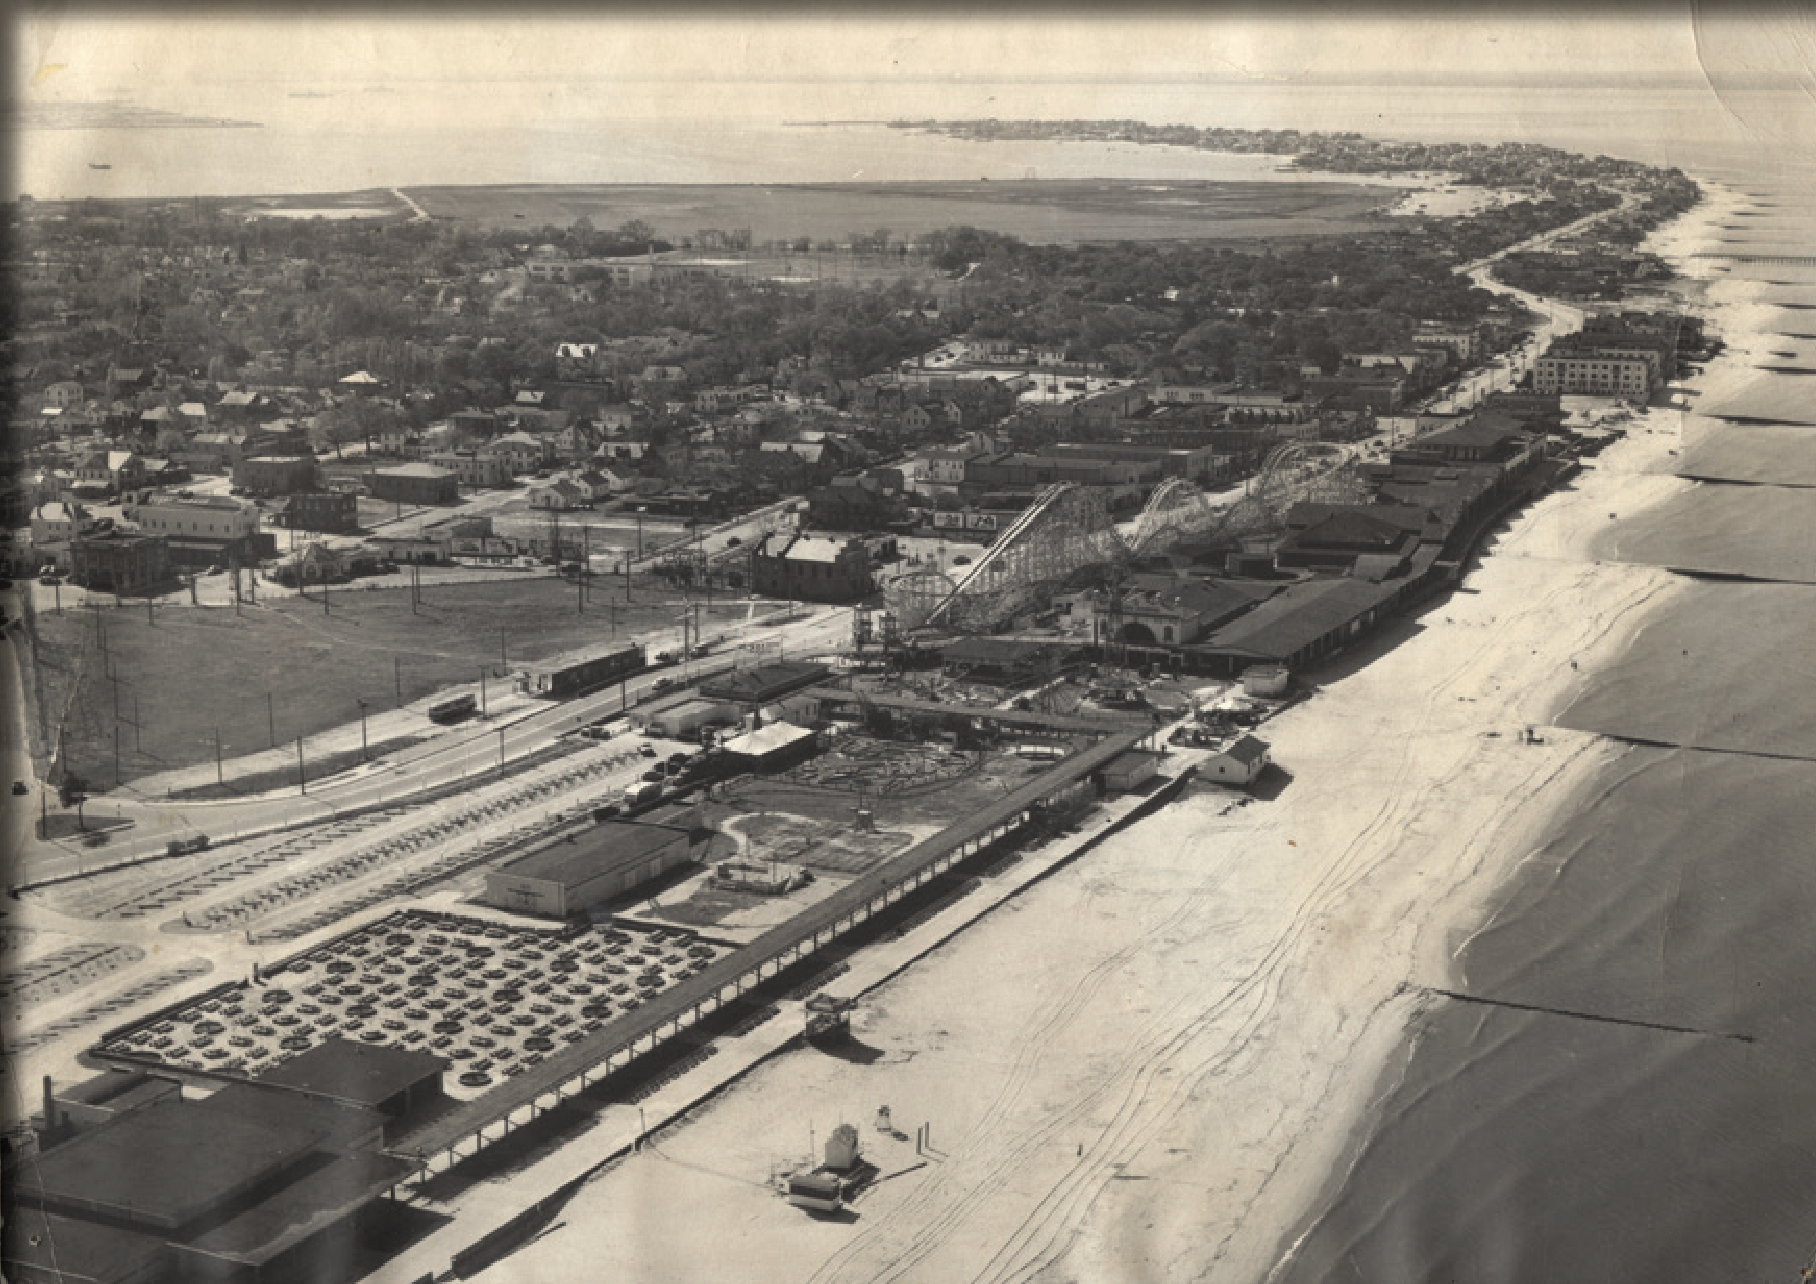 bird's eye view of Ocean View amusement park, ca 1950